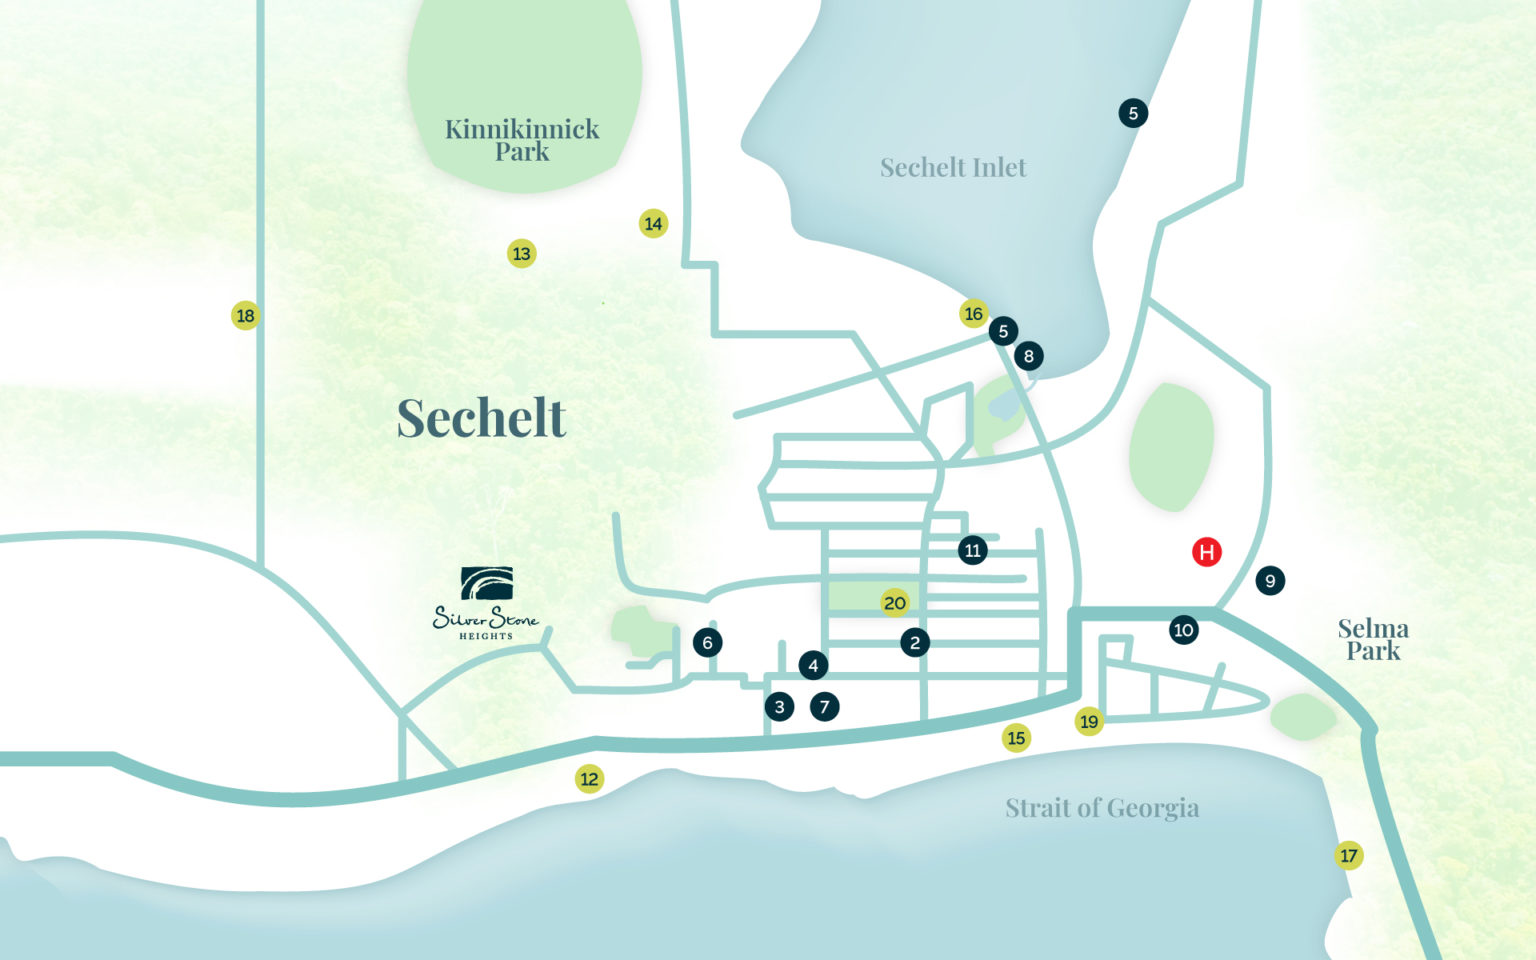 Map of Sechelt